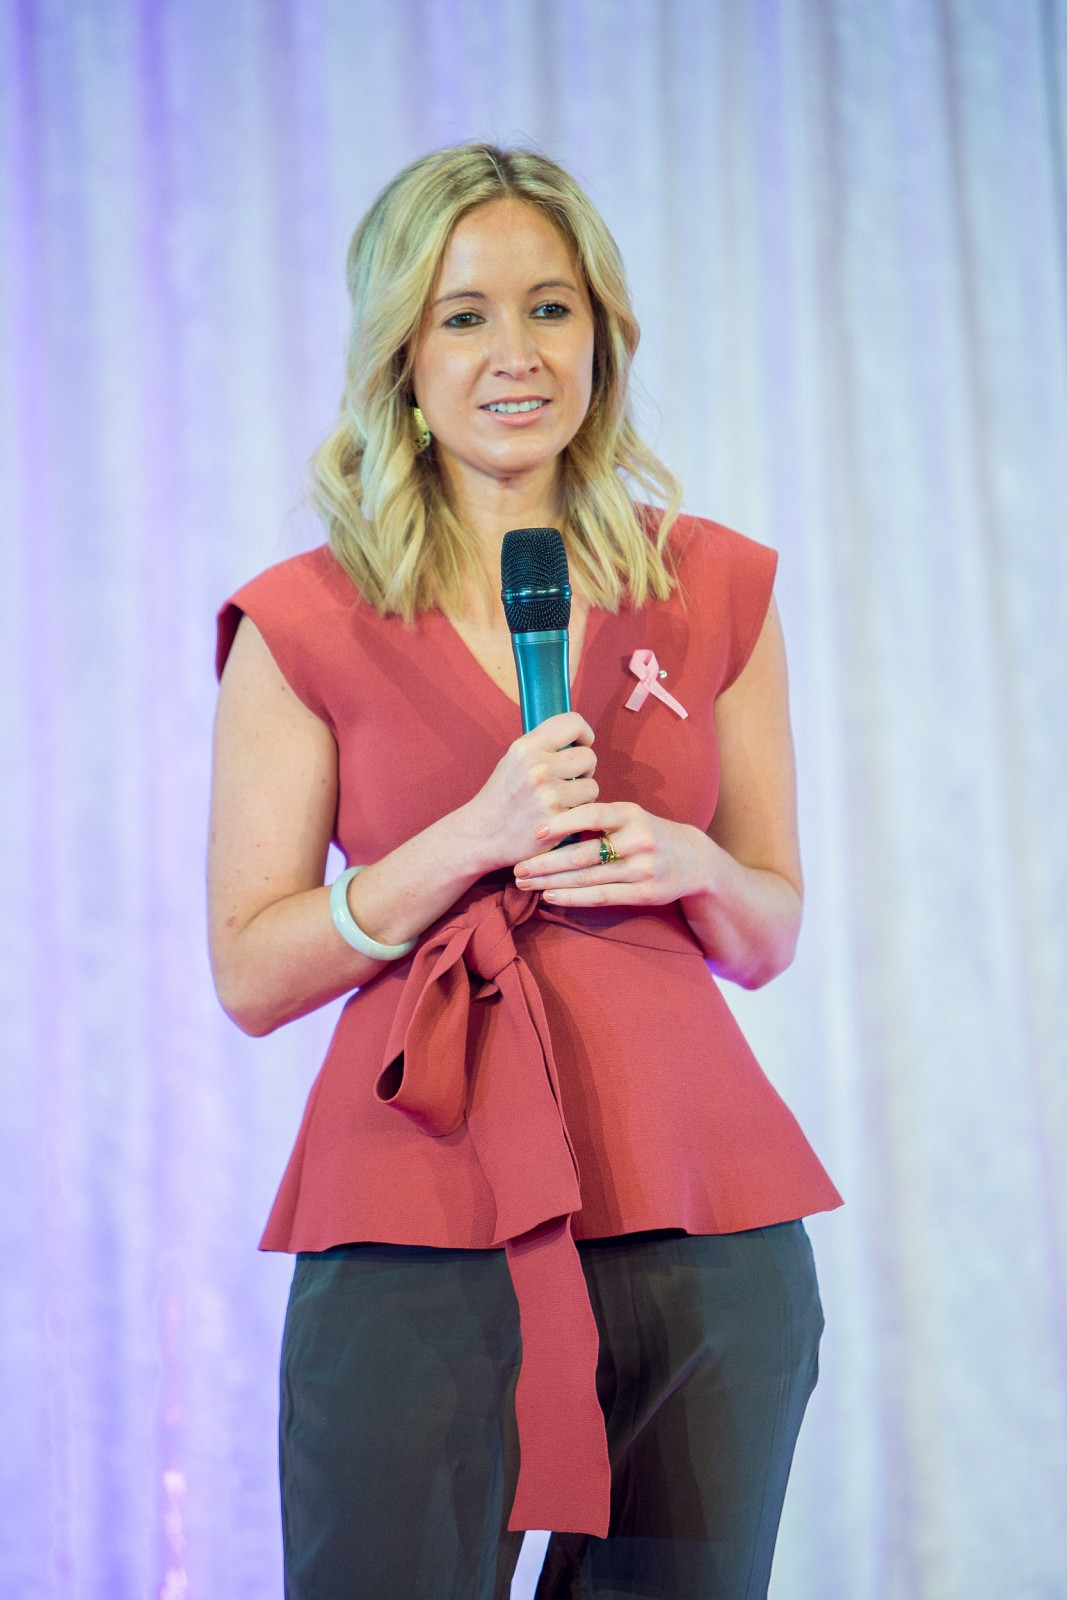 meet zara oh my goodness zara delivers the keynote speech in front of 850 guests at victorian events committee s 12th annual